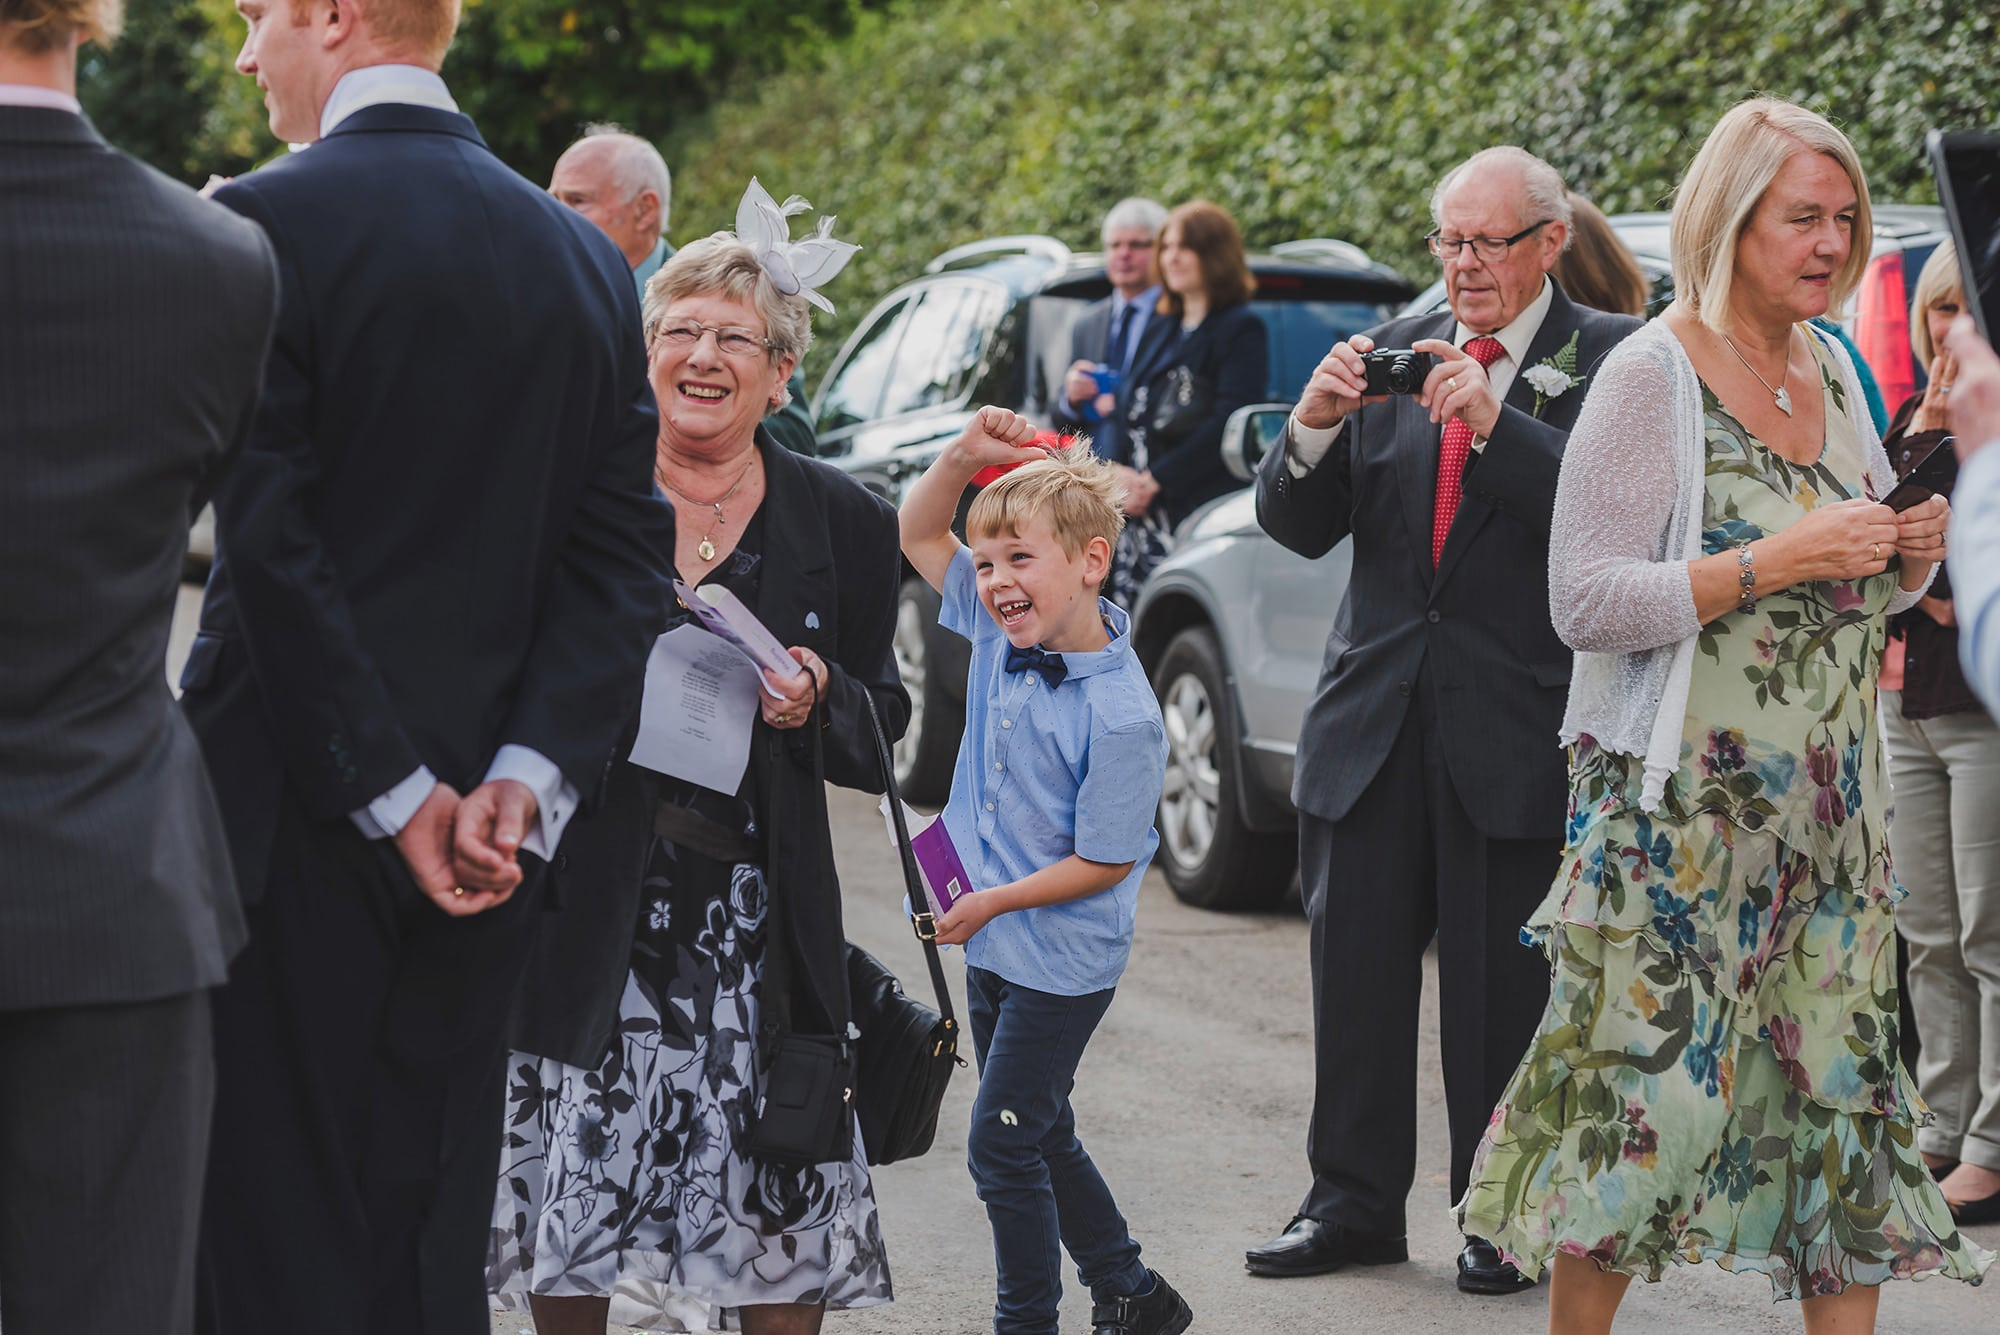 wistanstow village hall wedding shropshire